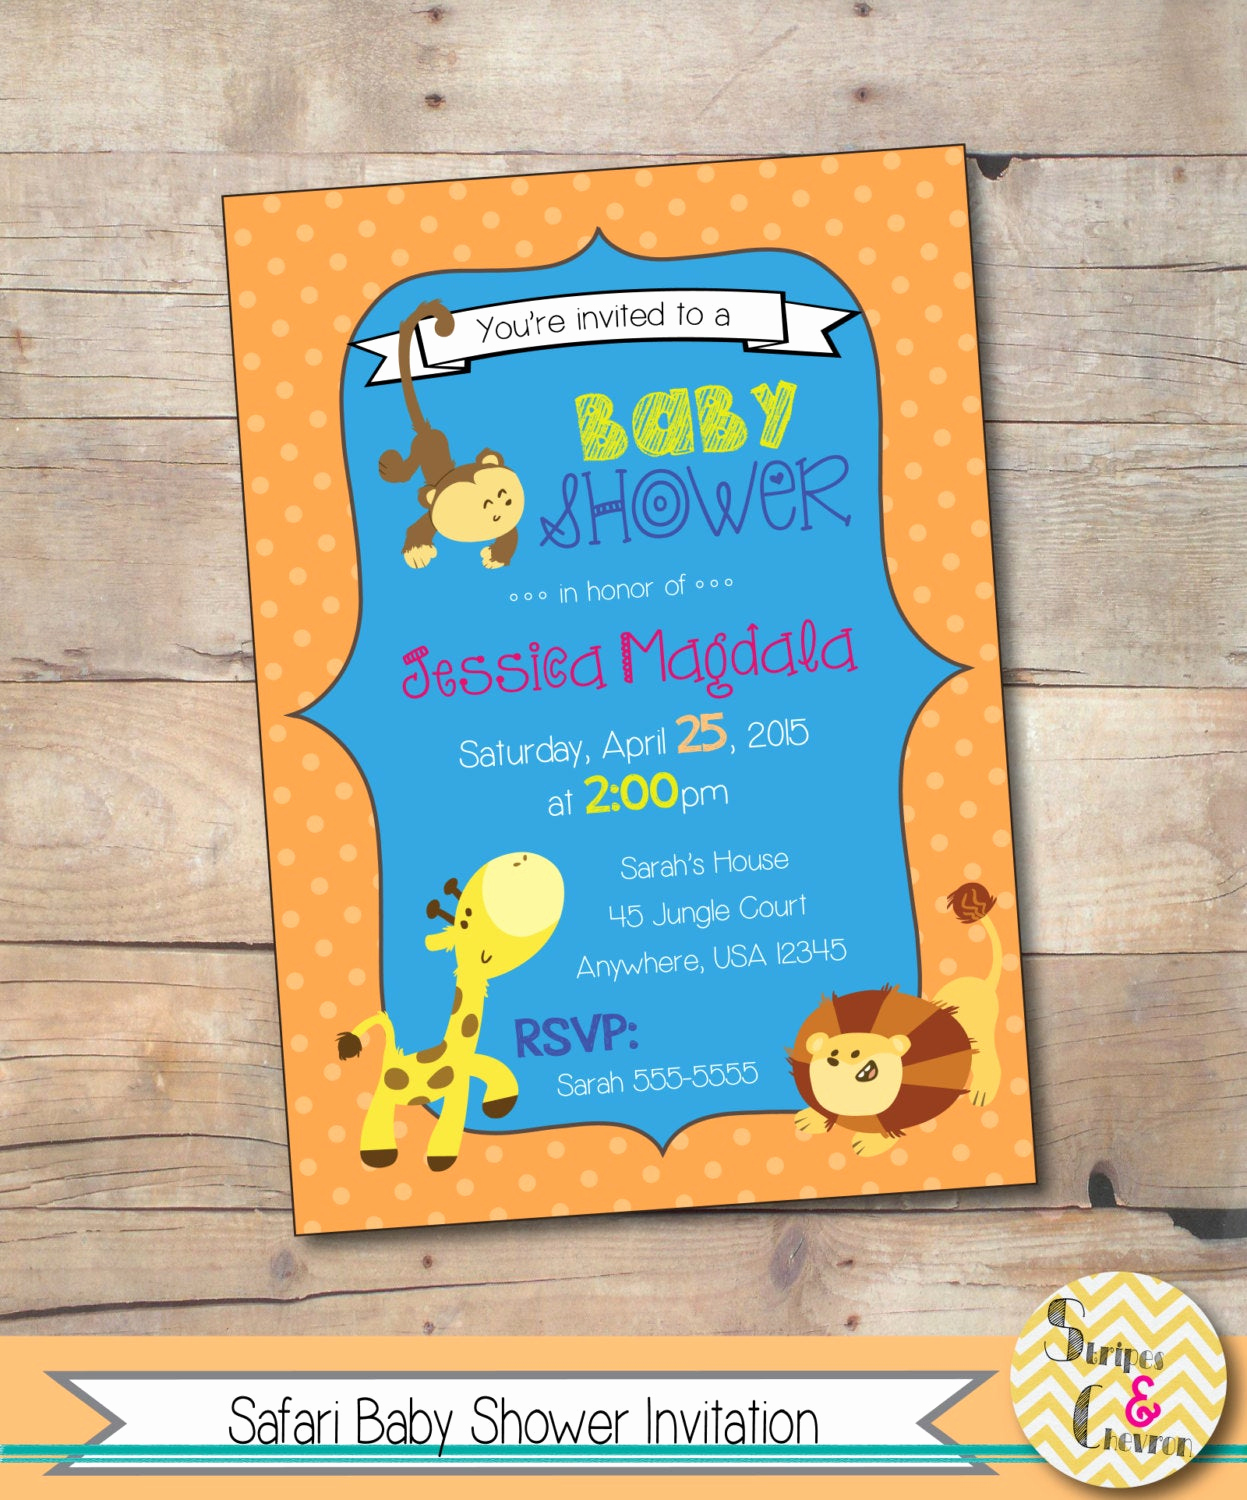 Baby Shower Safari Invitation Awesome Safari Baby Shower Invitation Jungle theme Baby Shower